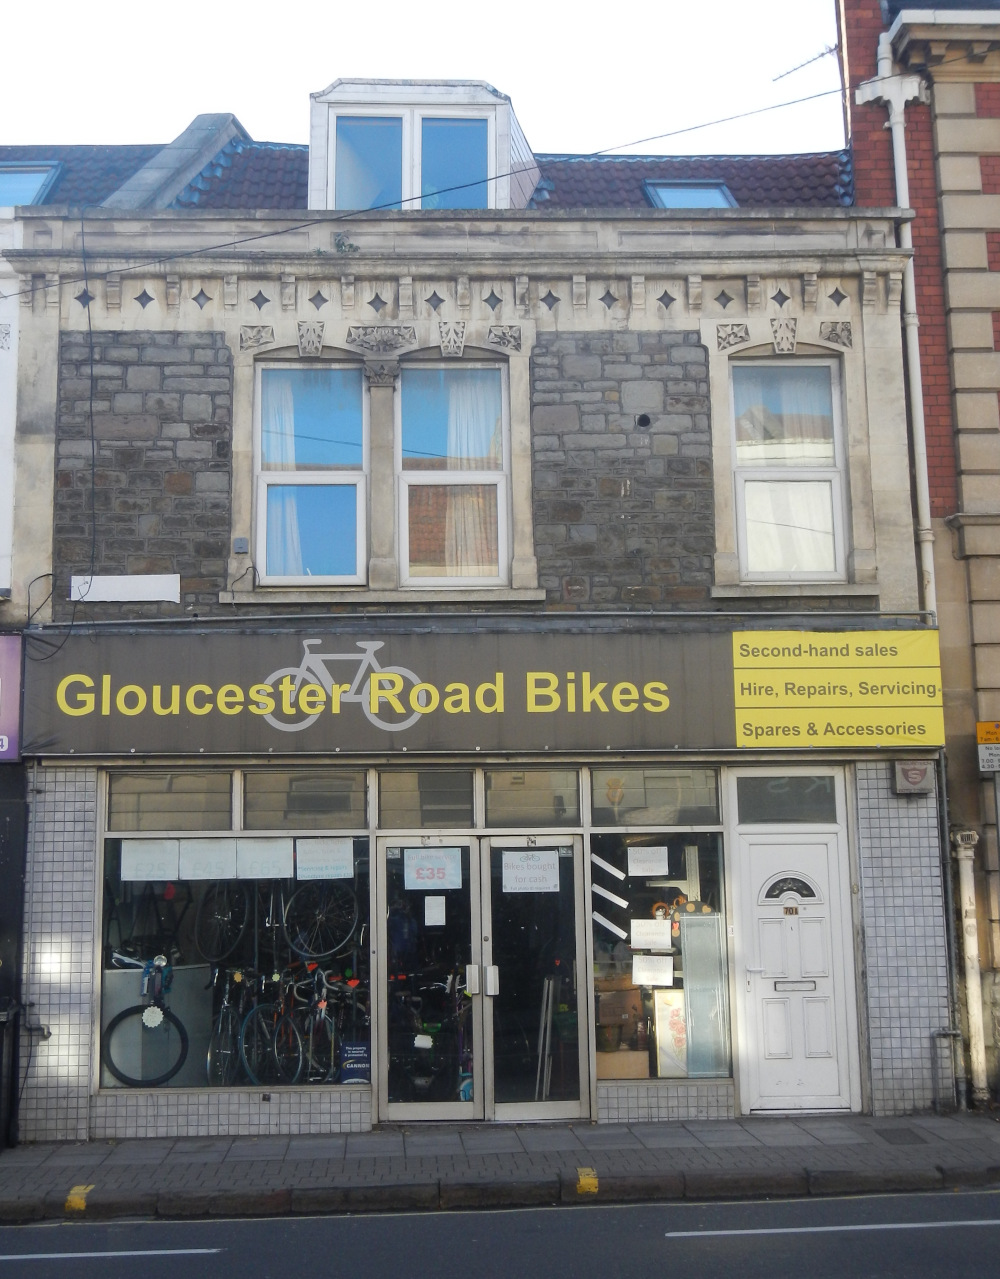 70, Gloucester Road dated 2017-11 from Full Survey 2017